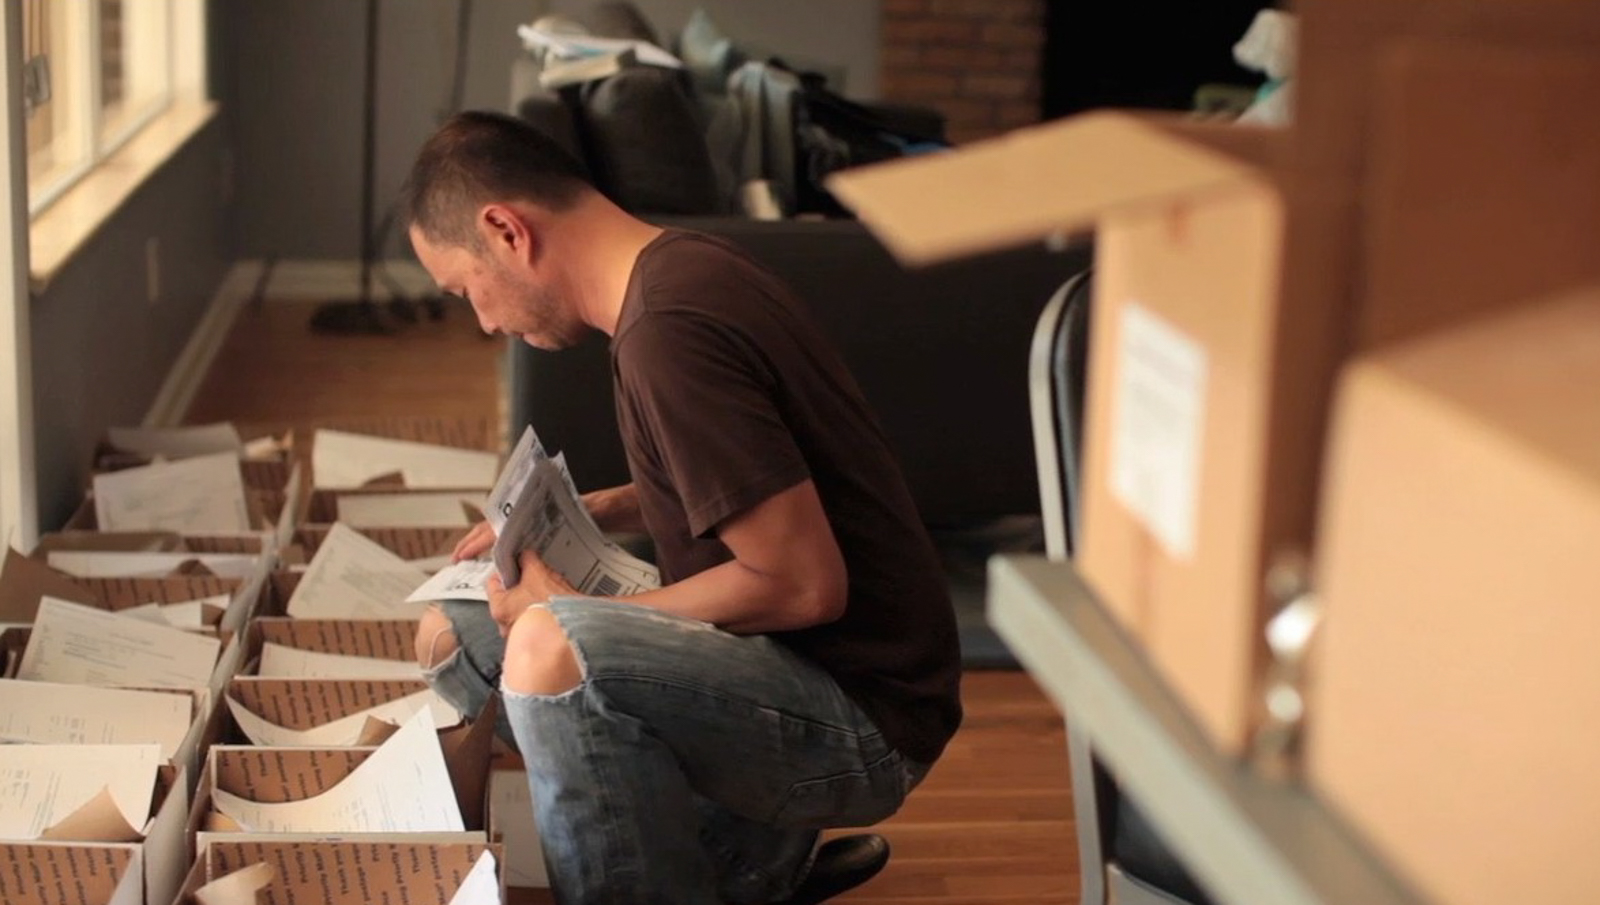 As with many startups, the founders were busy early on with all sorts of tasks. Here, Allen Lim is shown filling orders himself. Photo: Jamie Kripke.